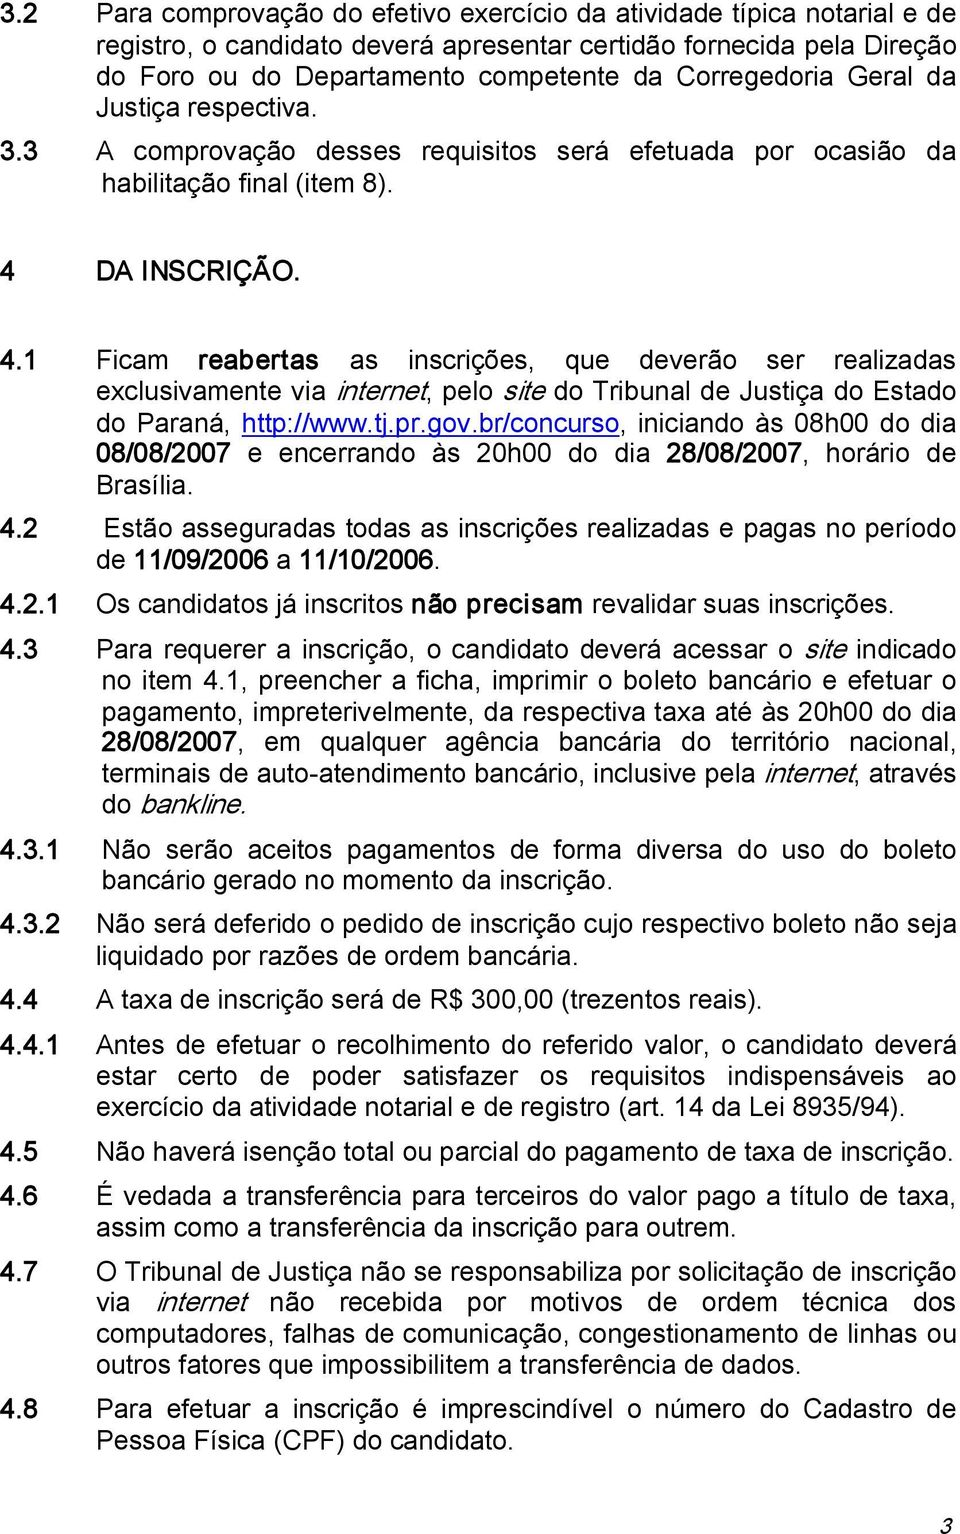 DA INSCRIÇÃO. 4.1 Ficam reabertas as inscrições, que deverão ser realizadas exclusivamente via internet, pelo site do Tribunal de Justiça do Estado do Paraná, http://www.tj.pr.gov.